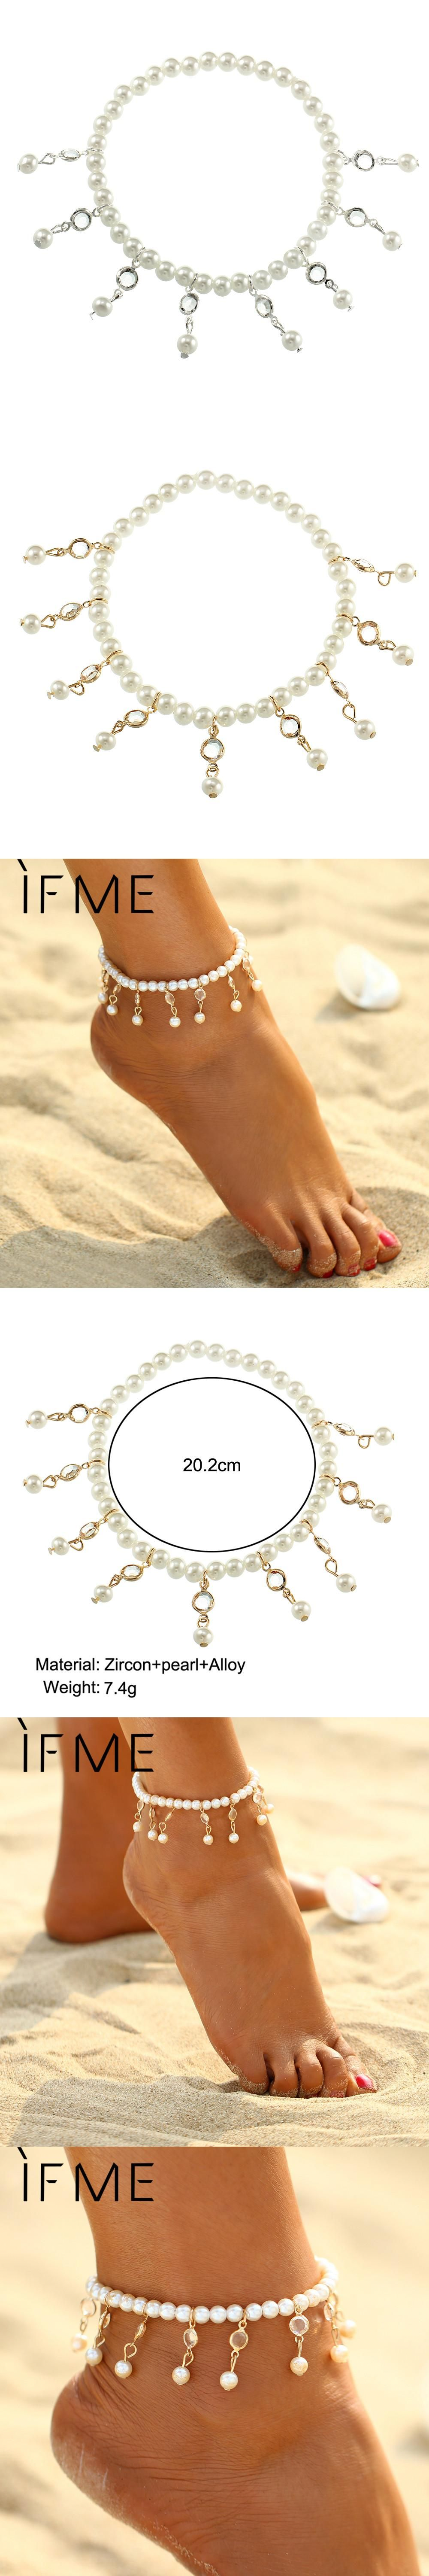 jewelry anklet payal goldtone indian ankle barefoot traditional wedding itm bracelet